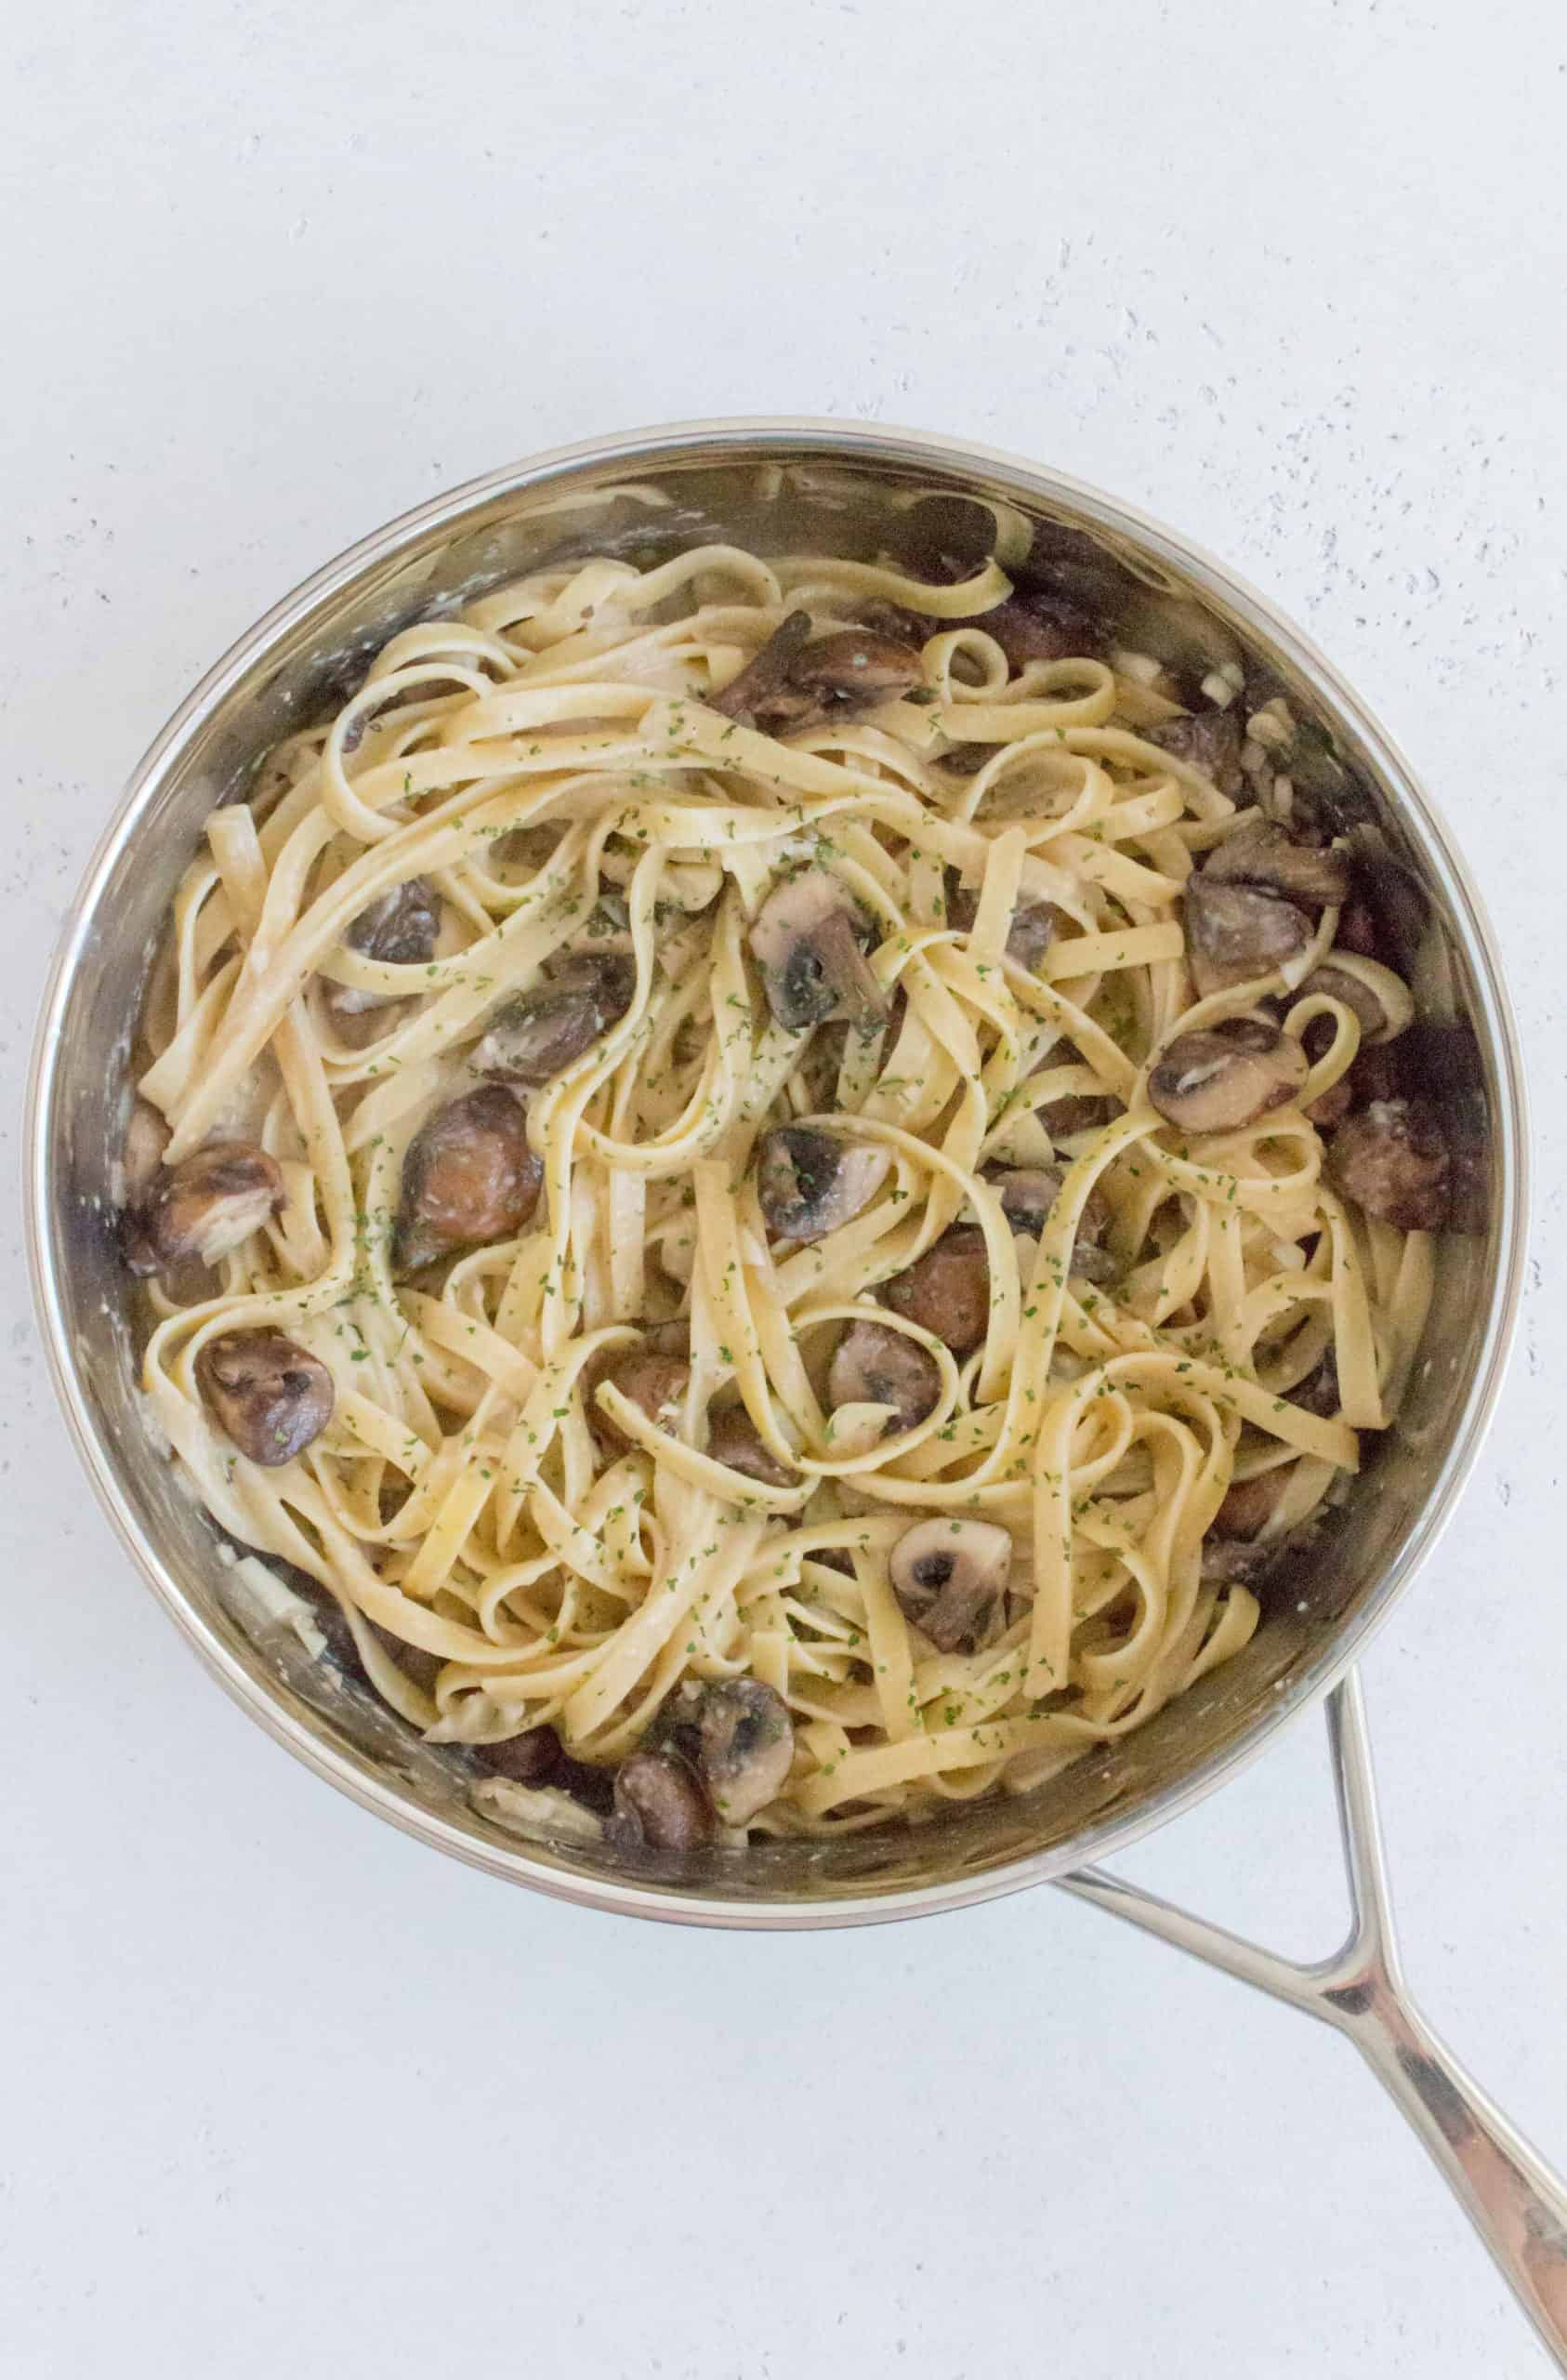 Add in the pasta noodles. Pour in the reserved miso paste, pasta water, and parmesan. Stir to combine and to coat the pasta with the sauce.